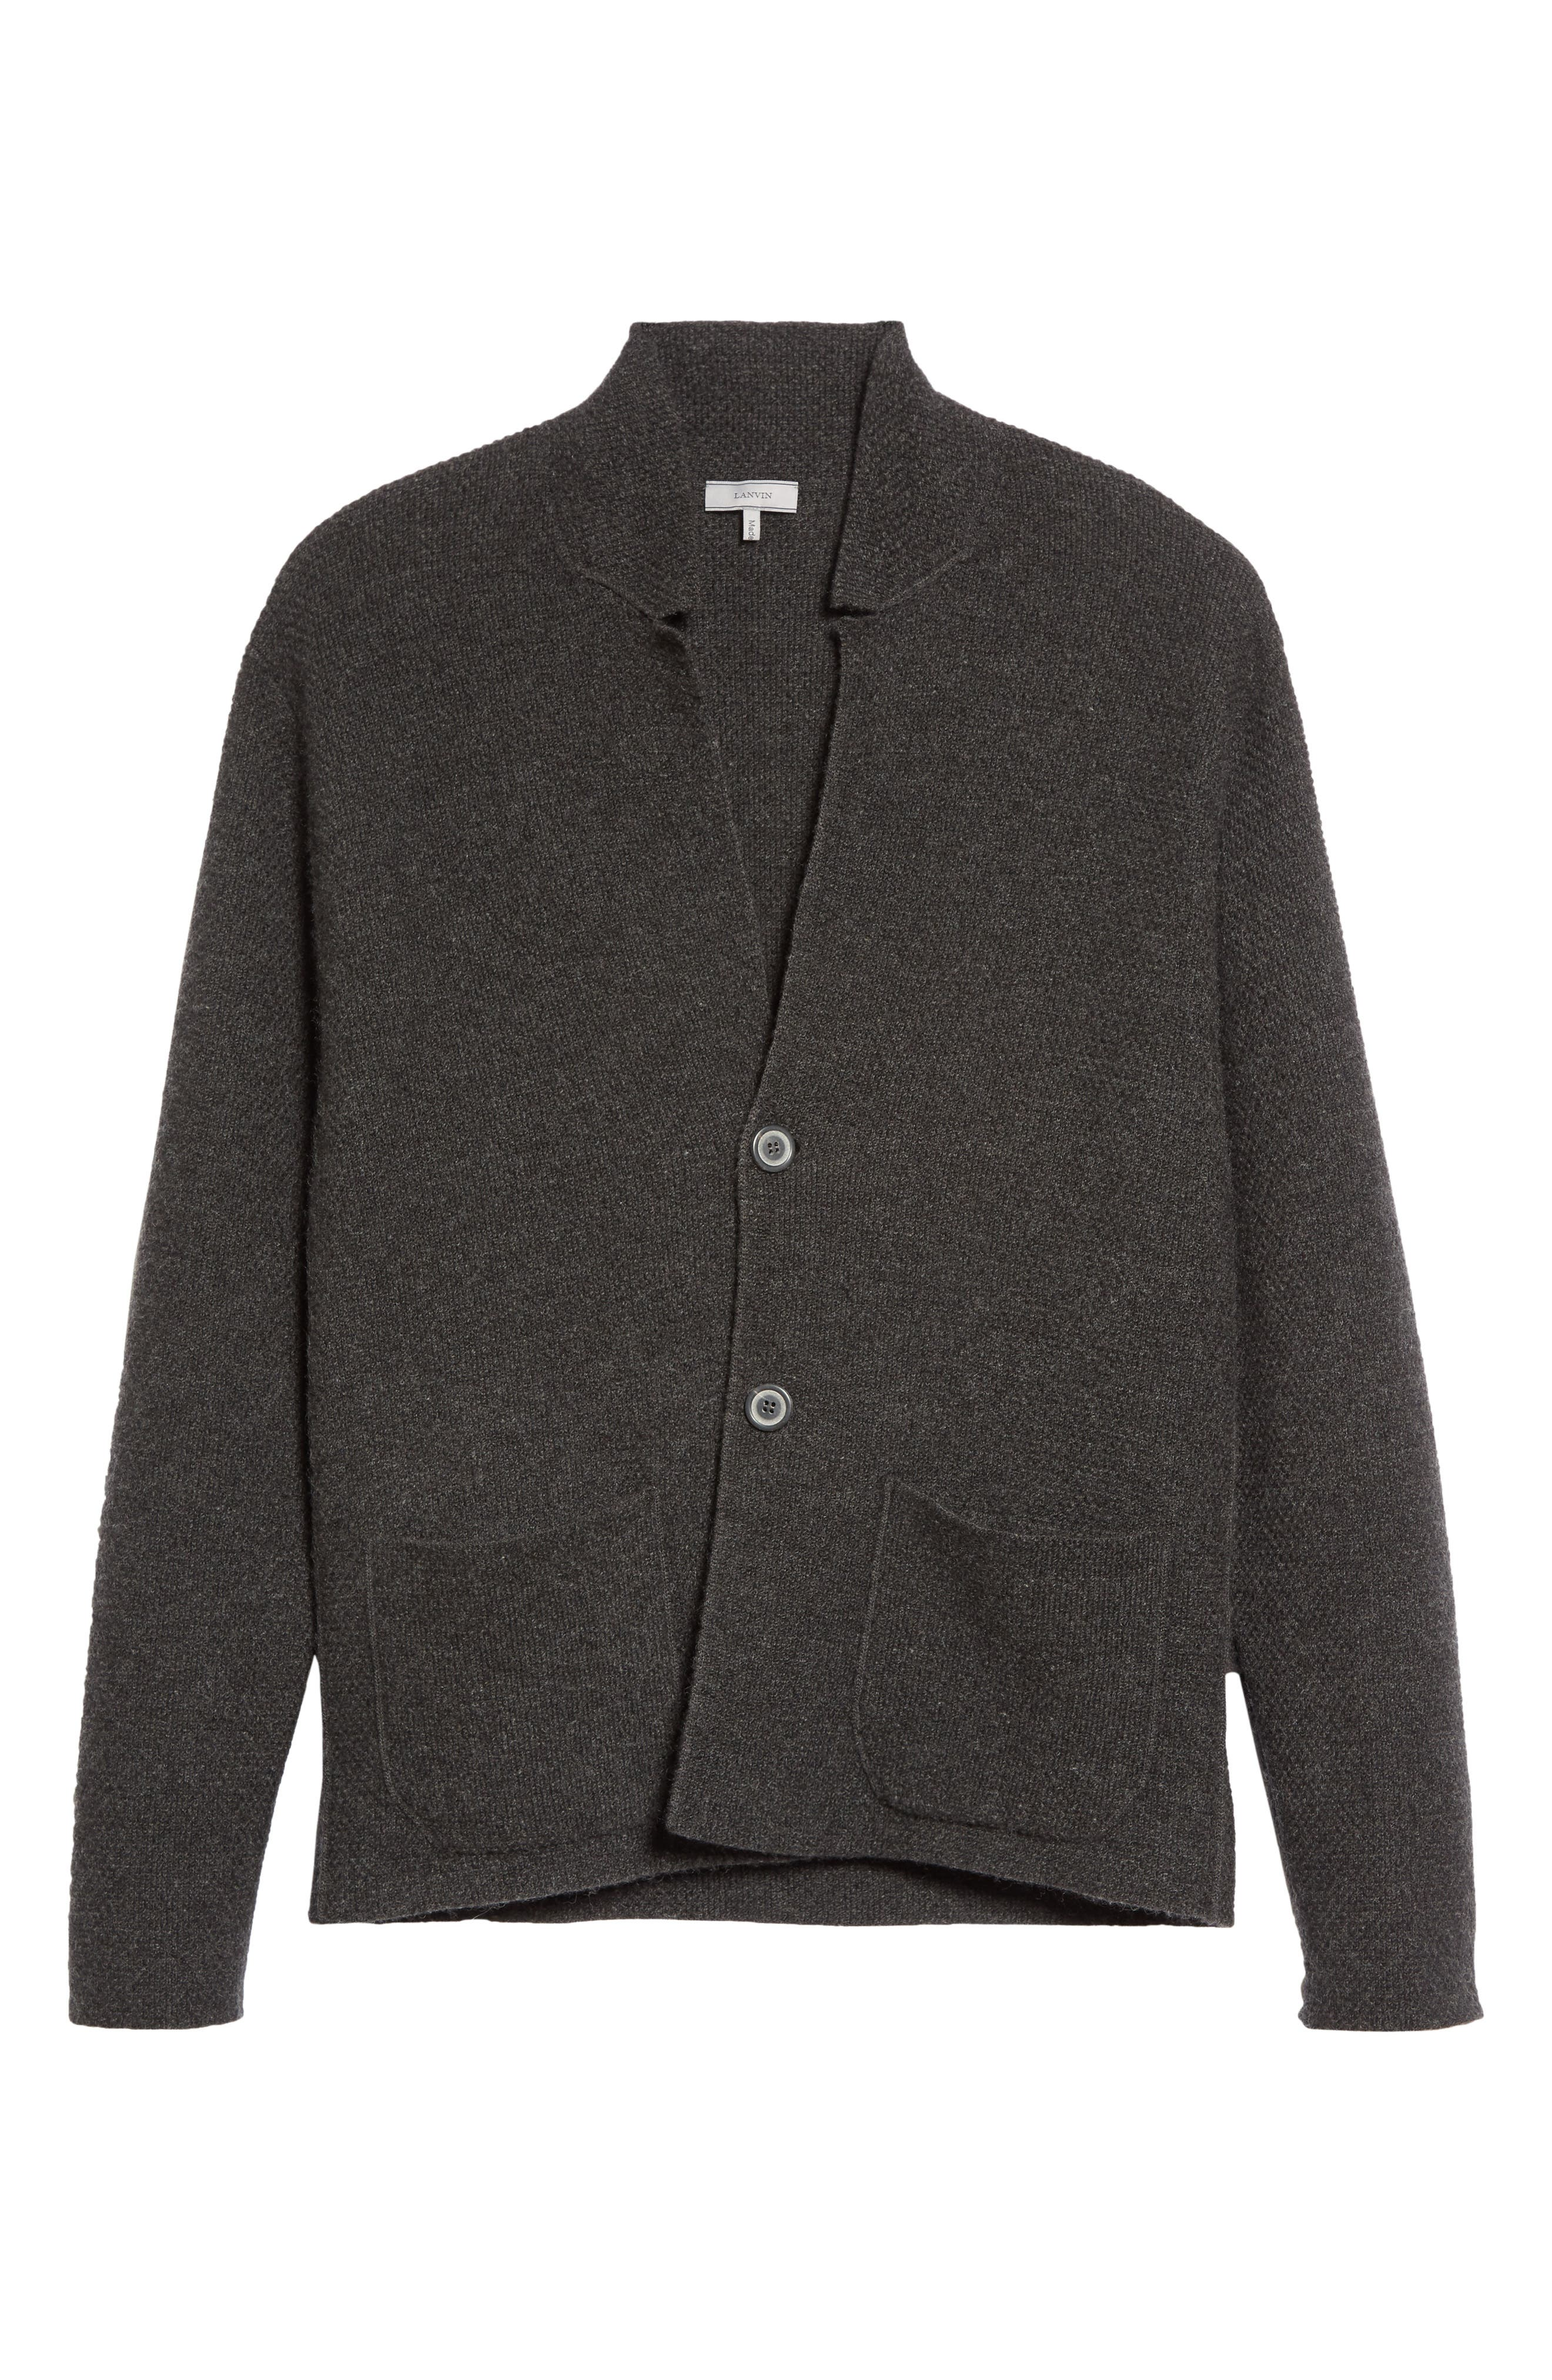 Cashmere Sweater Jacket,                             Alternate thumbnail 6, color,                             Anthracite